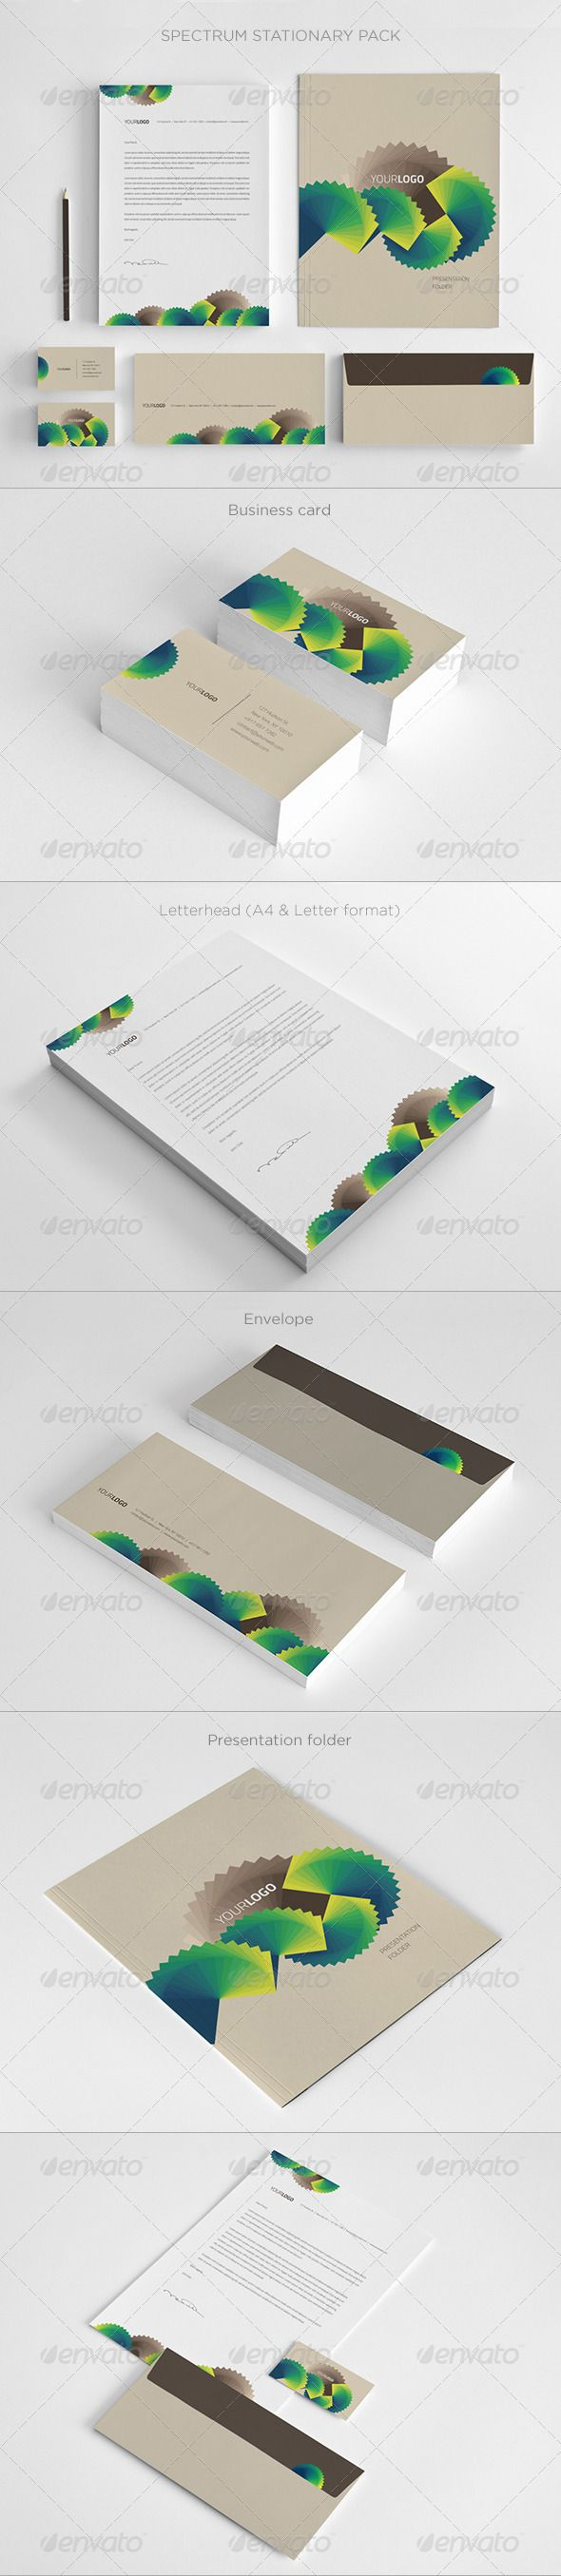 Spectrum Stationary  #GraphicRiver         SPECTRUM STATIONARY   Pack includes   · Letterhead A4 and Letter size   · Business Card (3,5×2)   · Envelope (8.27×3.9)   · Presentation Folder (9×12)   · Editable Illustrator files (.AI and .EPS)   · Textures   · 300 dpi, CMYK (print ready)   · 3mm bleed and crop marks   · Easy to customize   · Help file   Fonts   Titillium   You can find the matching brochure here   You can find the matching trifold here     Created: 21September13…